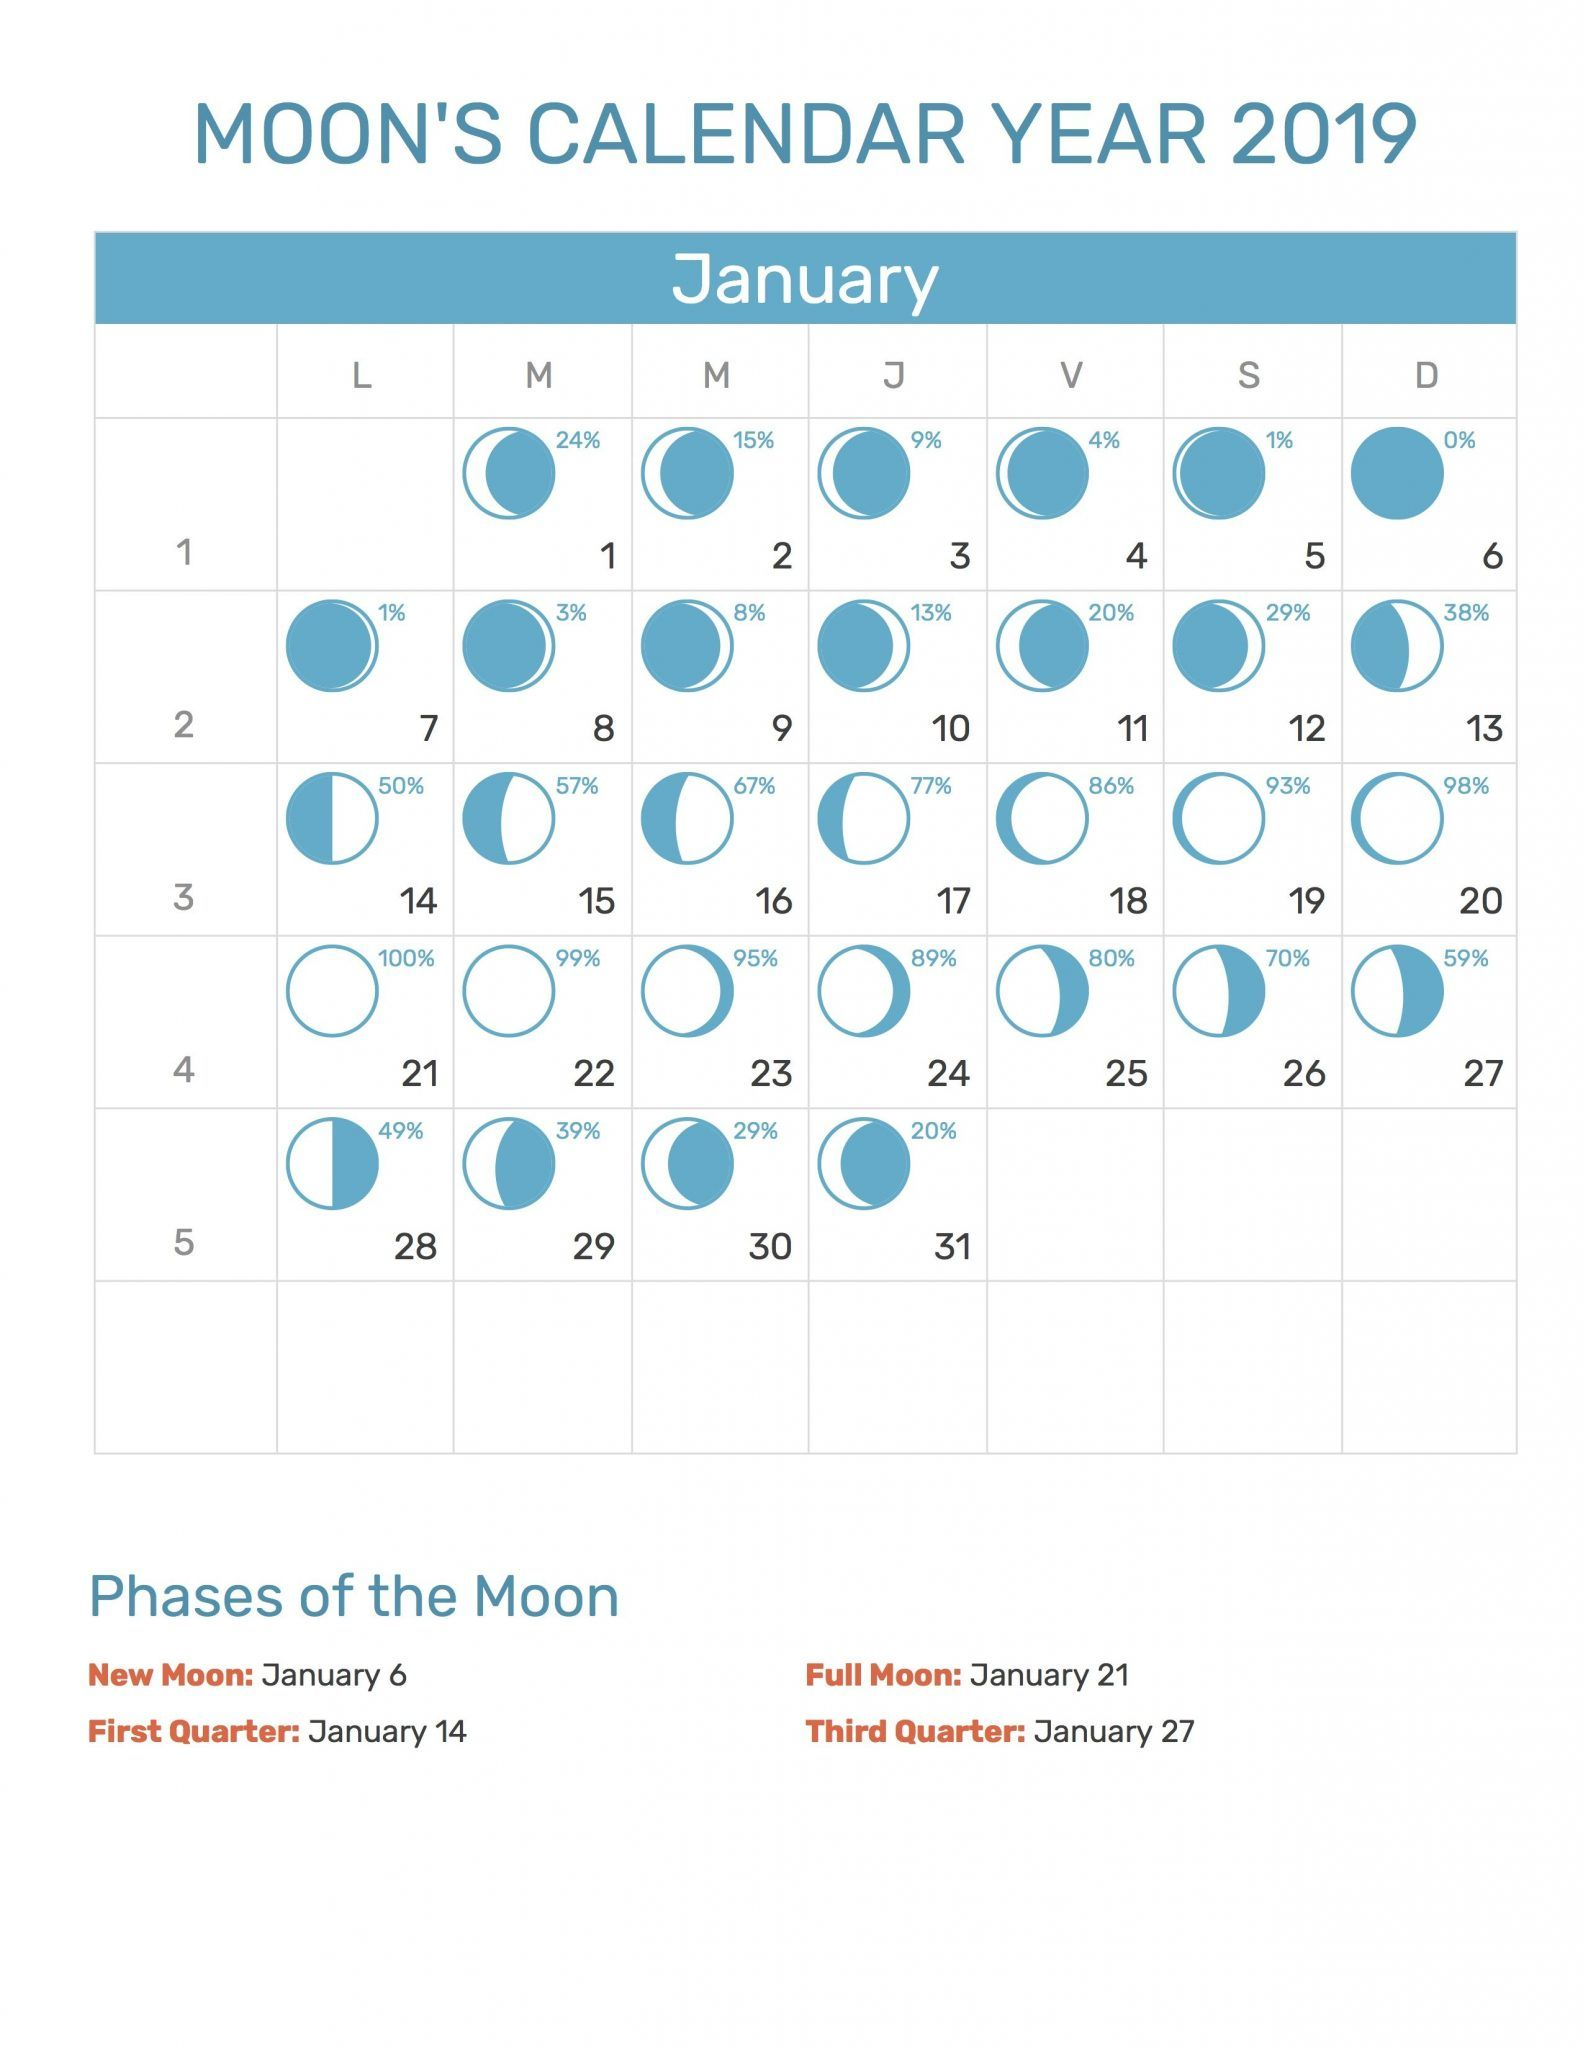 January 2019 Calendar Moons January 2019 Full Moon Calendar | Blank January 2019 Calendar